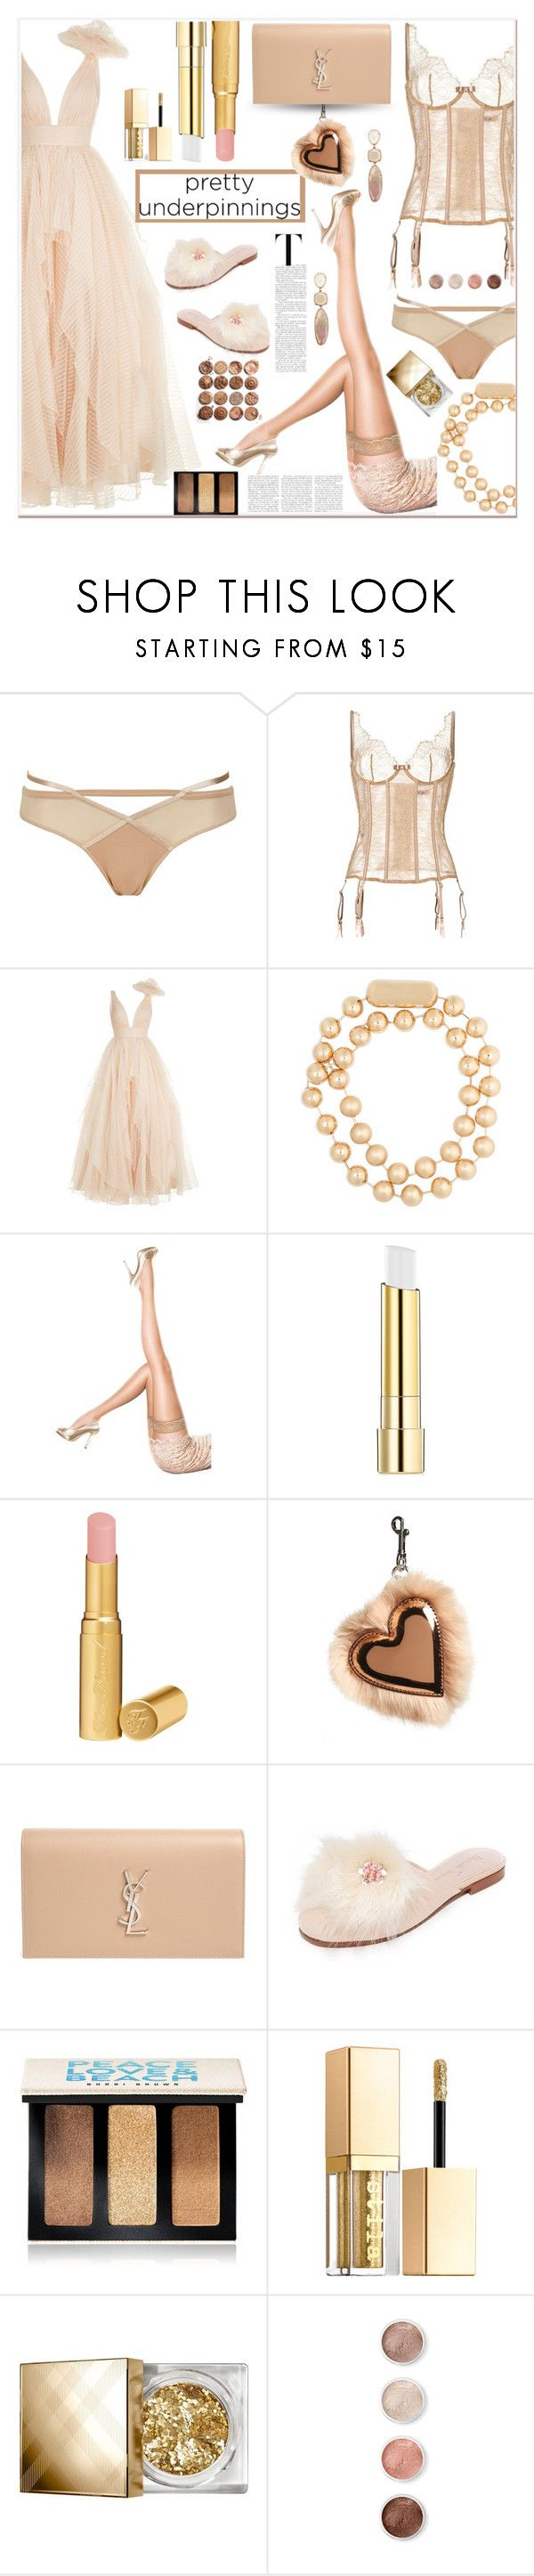 """Pretty Underpinnings"" by zouus ❤ liked on Polyvore featuring Topshop, Maison Close, Jovani, Balenciaga, Pretty Polly, Stila, Too Faced Cosmetics, STELLA McCARTNEY, Yves Saint Laurent and Alameda Turquesa"